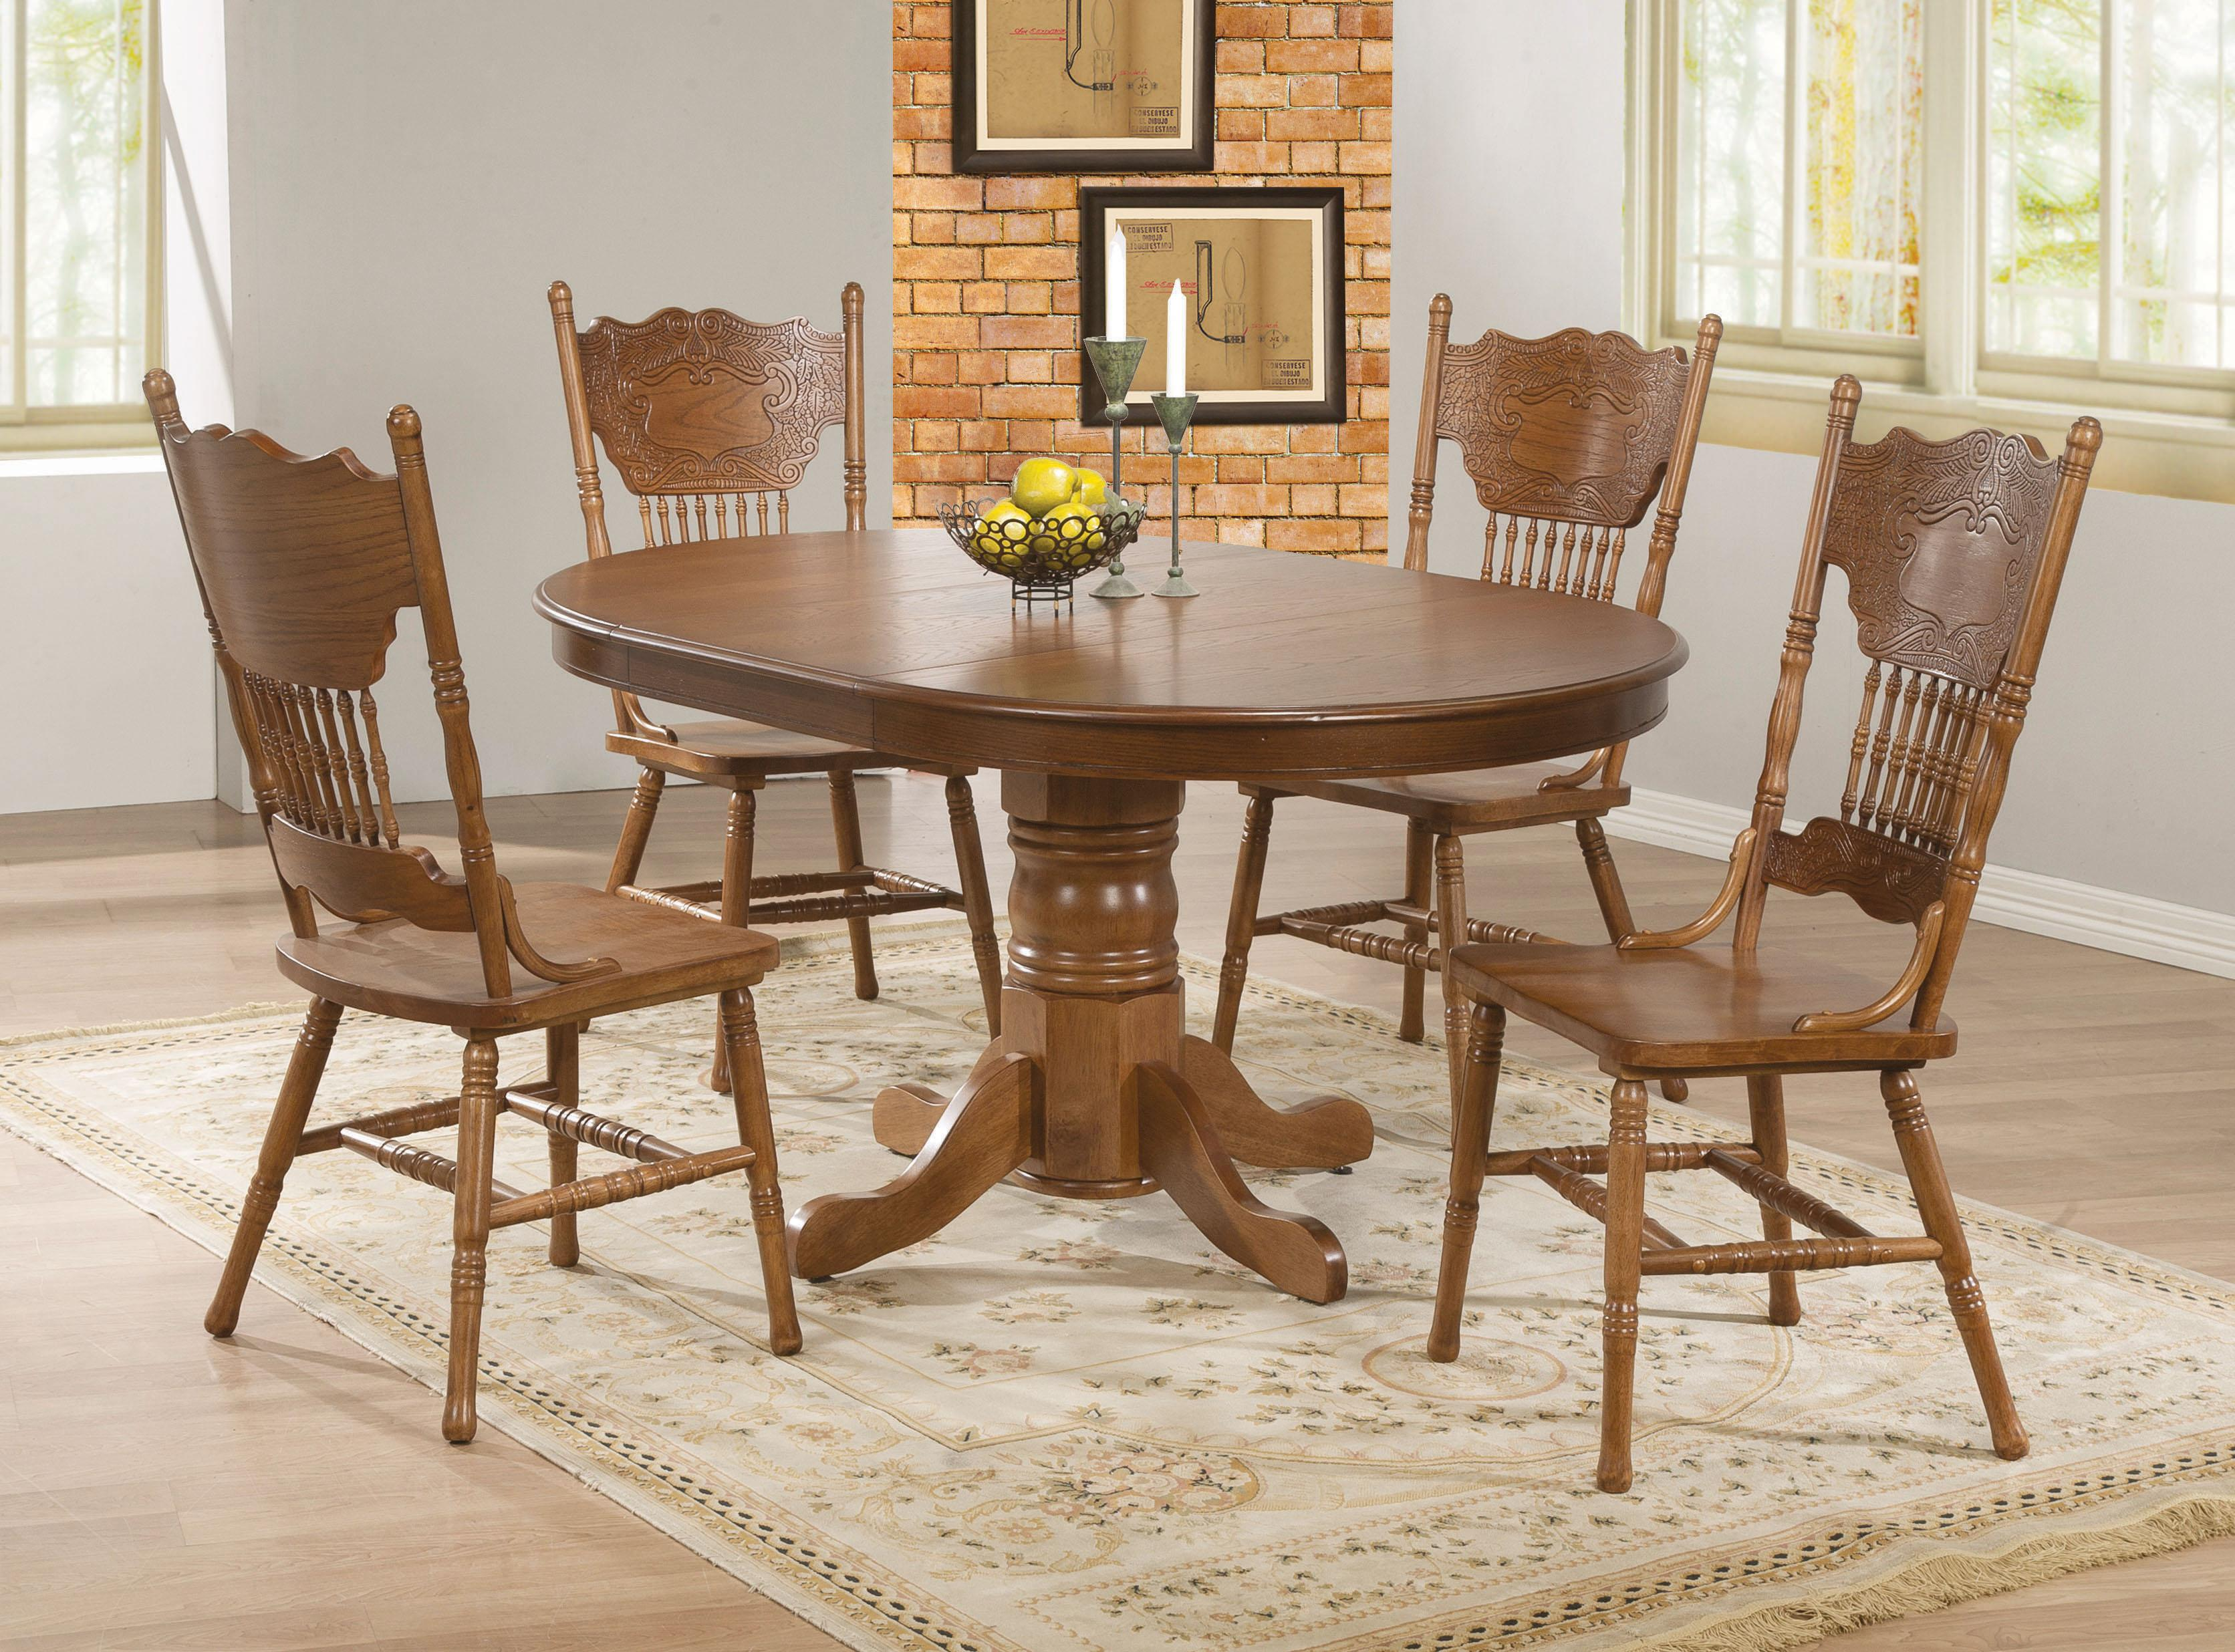 item oval kitchen table Oak Finish Round Oval Dining Table with Single Pedestal Decorative Apron Brooks by Coaster Wilcox Furniture Dining Tables Corpus Christi